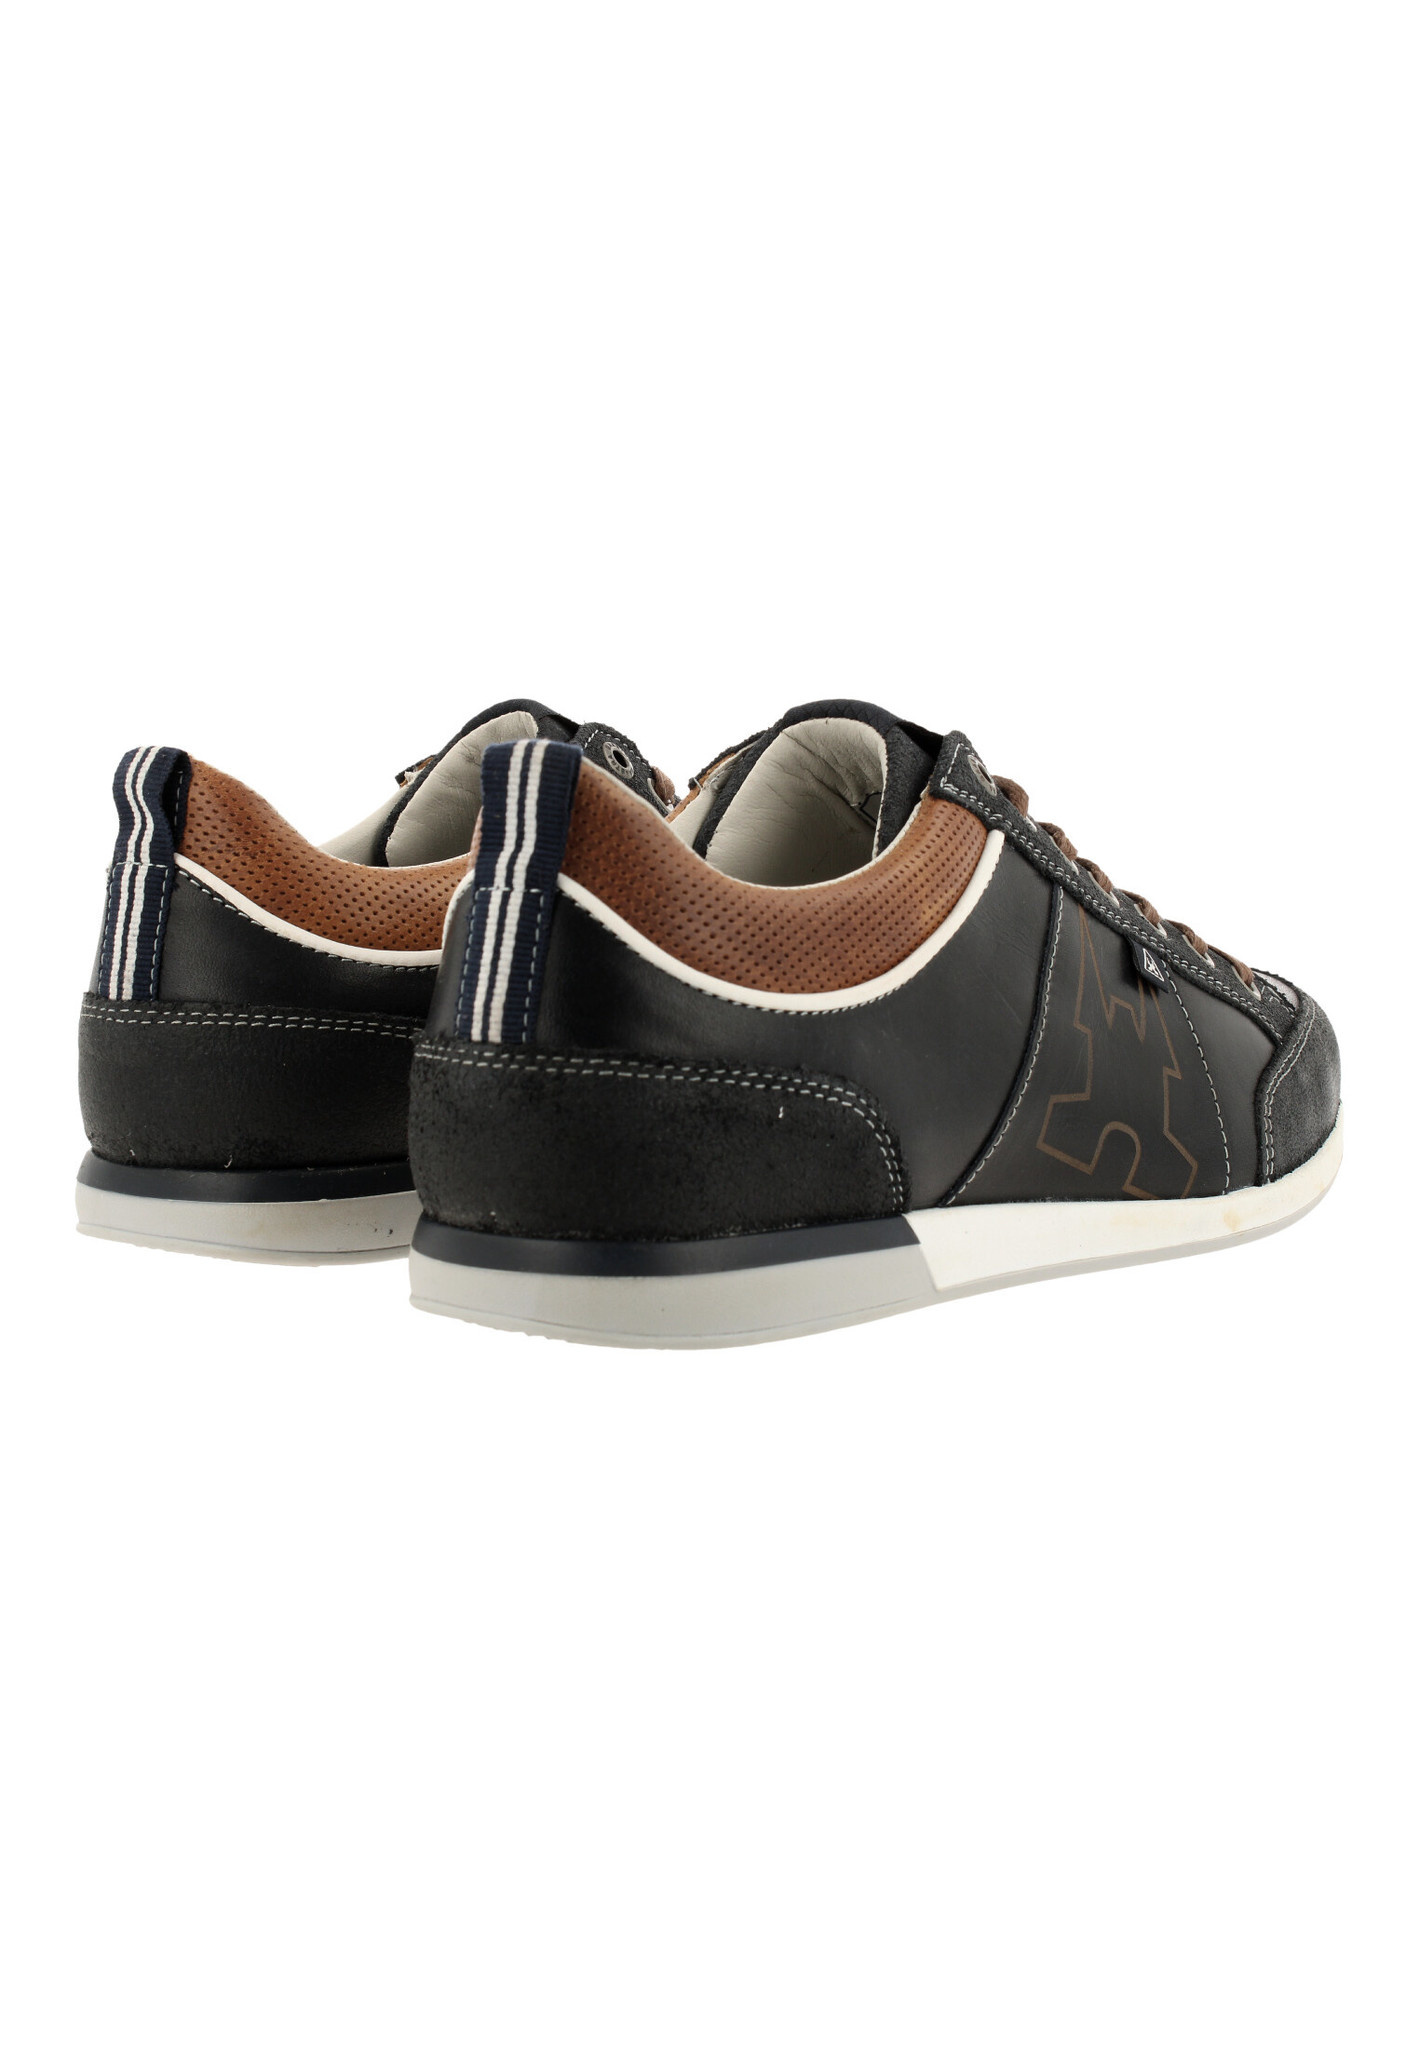 Sneakers BAYLINE - navy